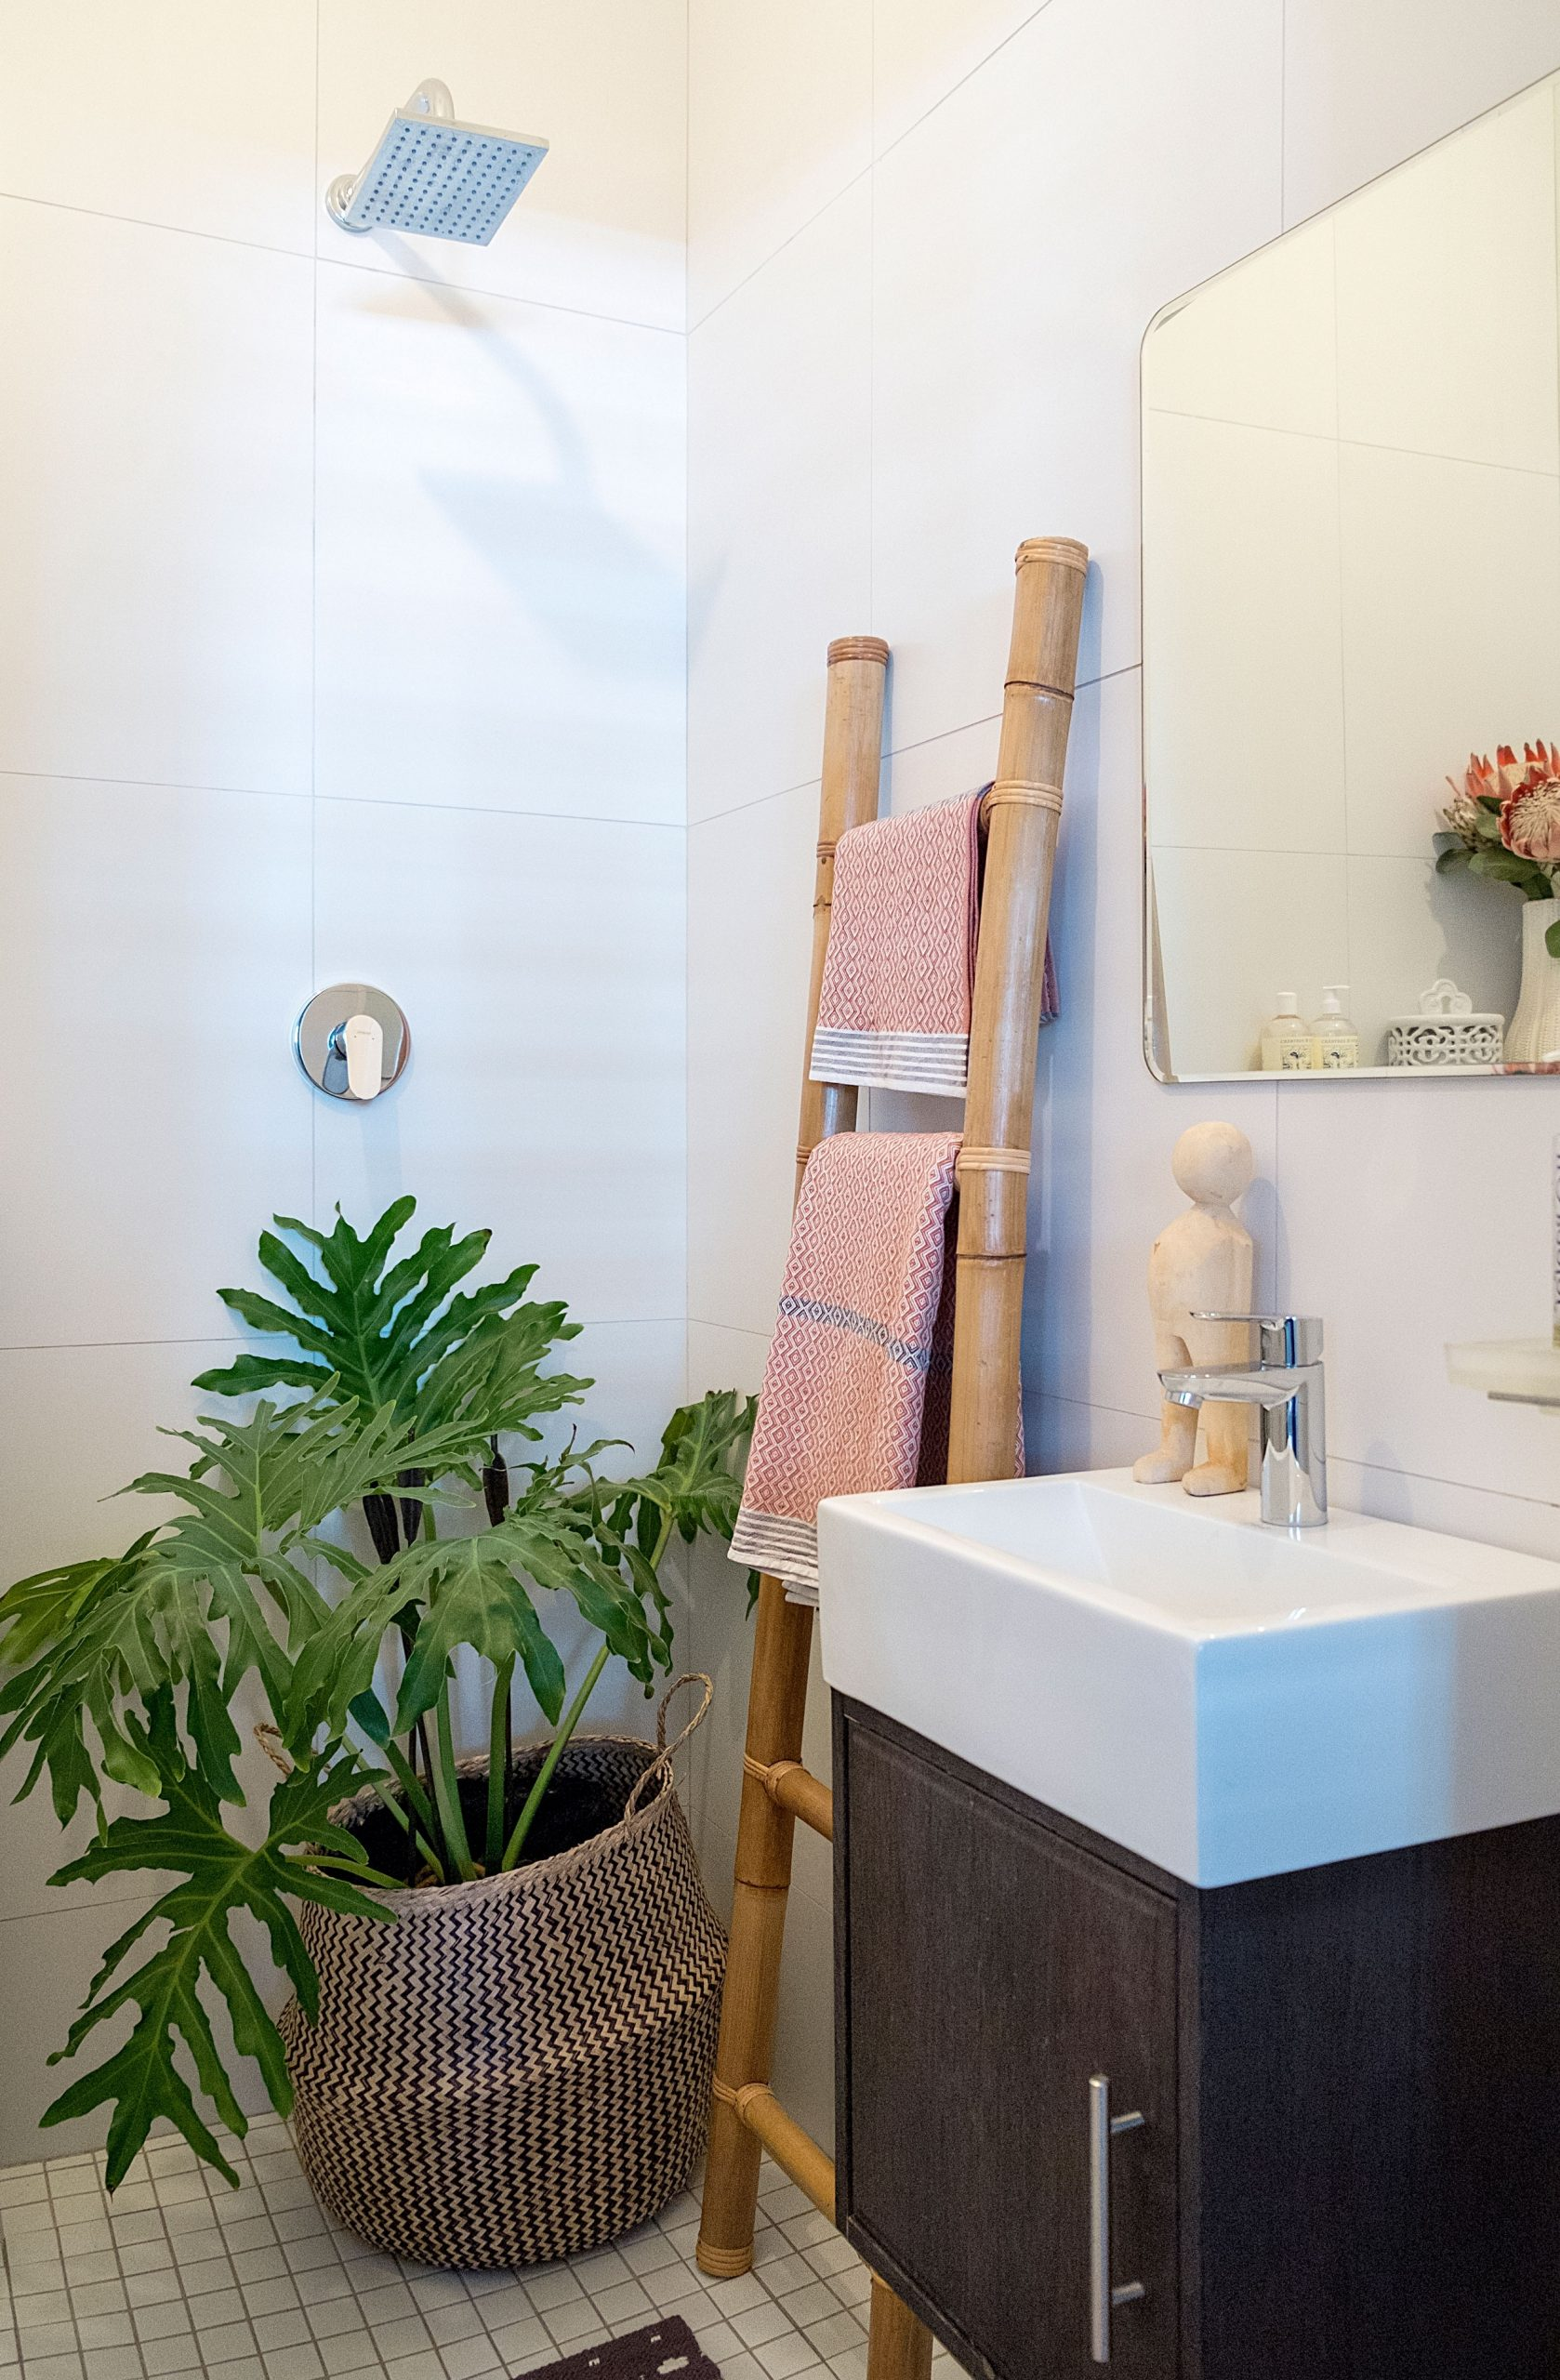 Best Plants For A Windowless Bathroom | Apartment Therapy Small Windowless Bathroom Decorating